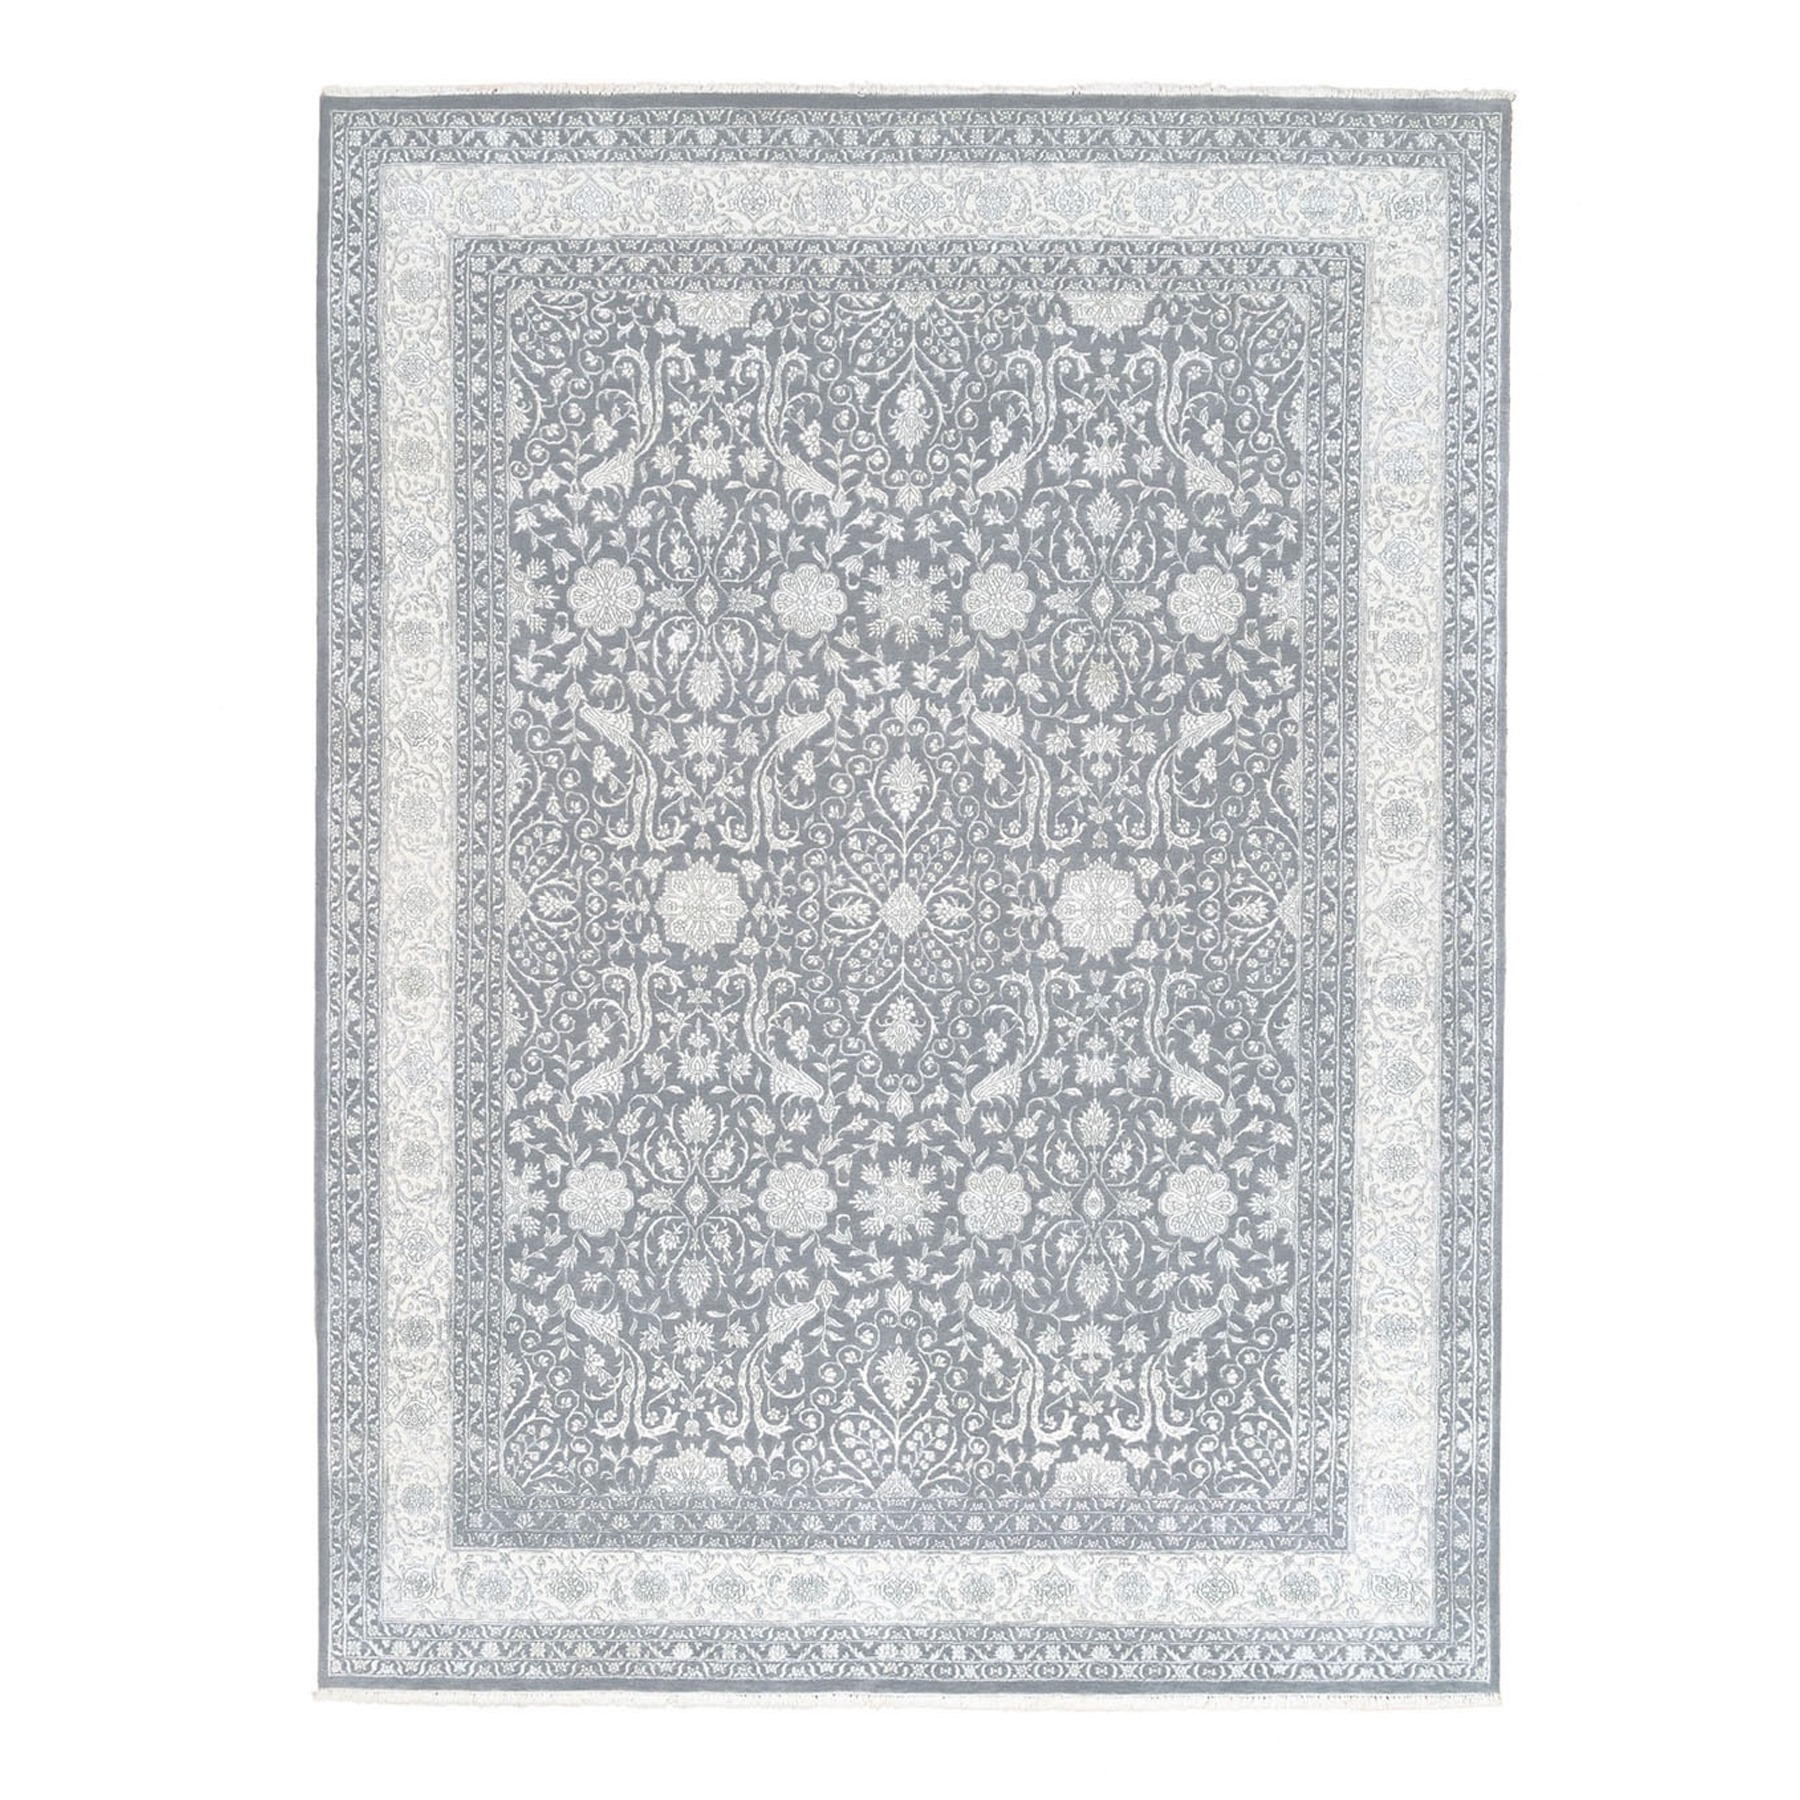 Traditional Rugs LUV560160